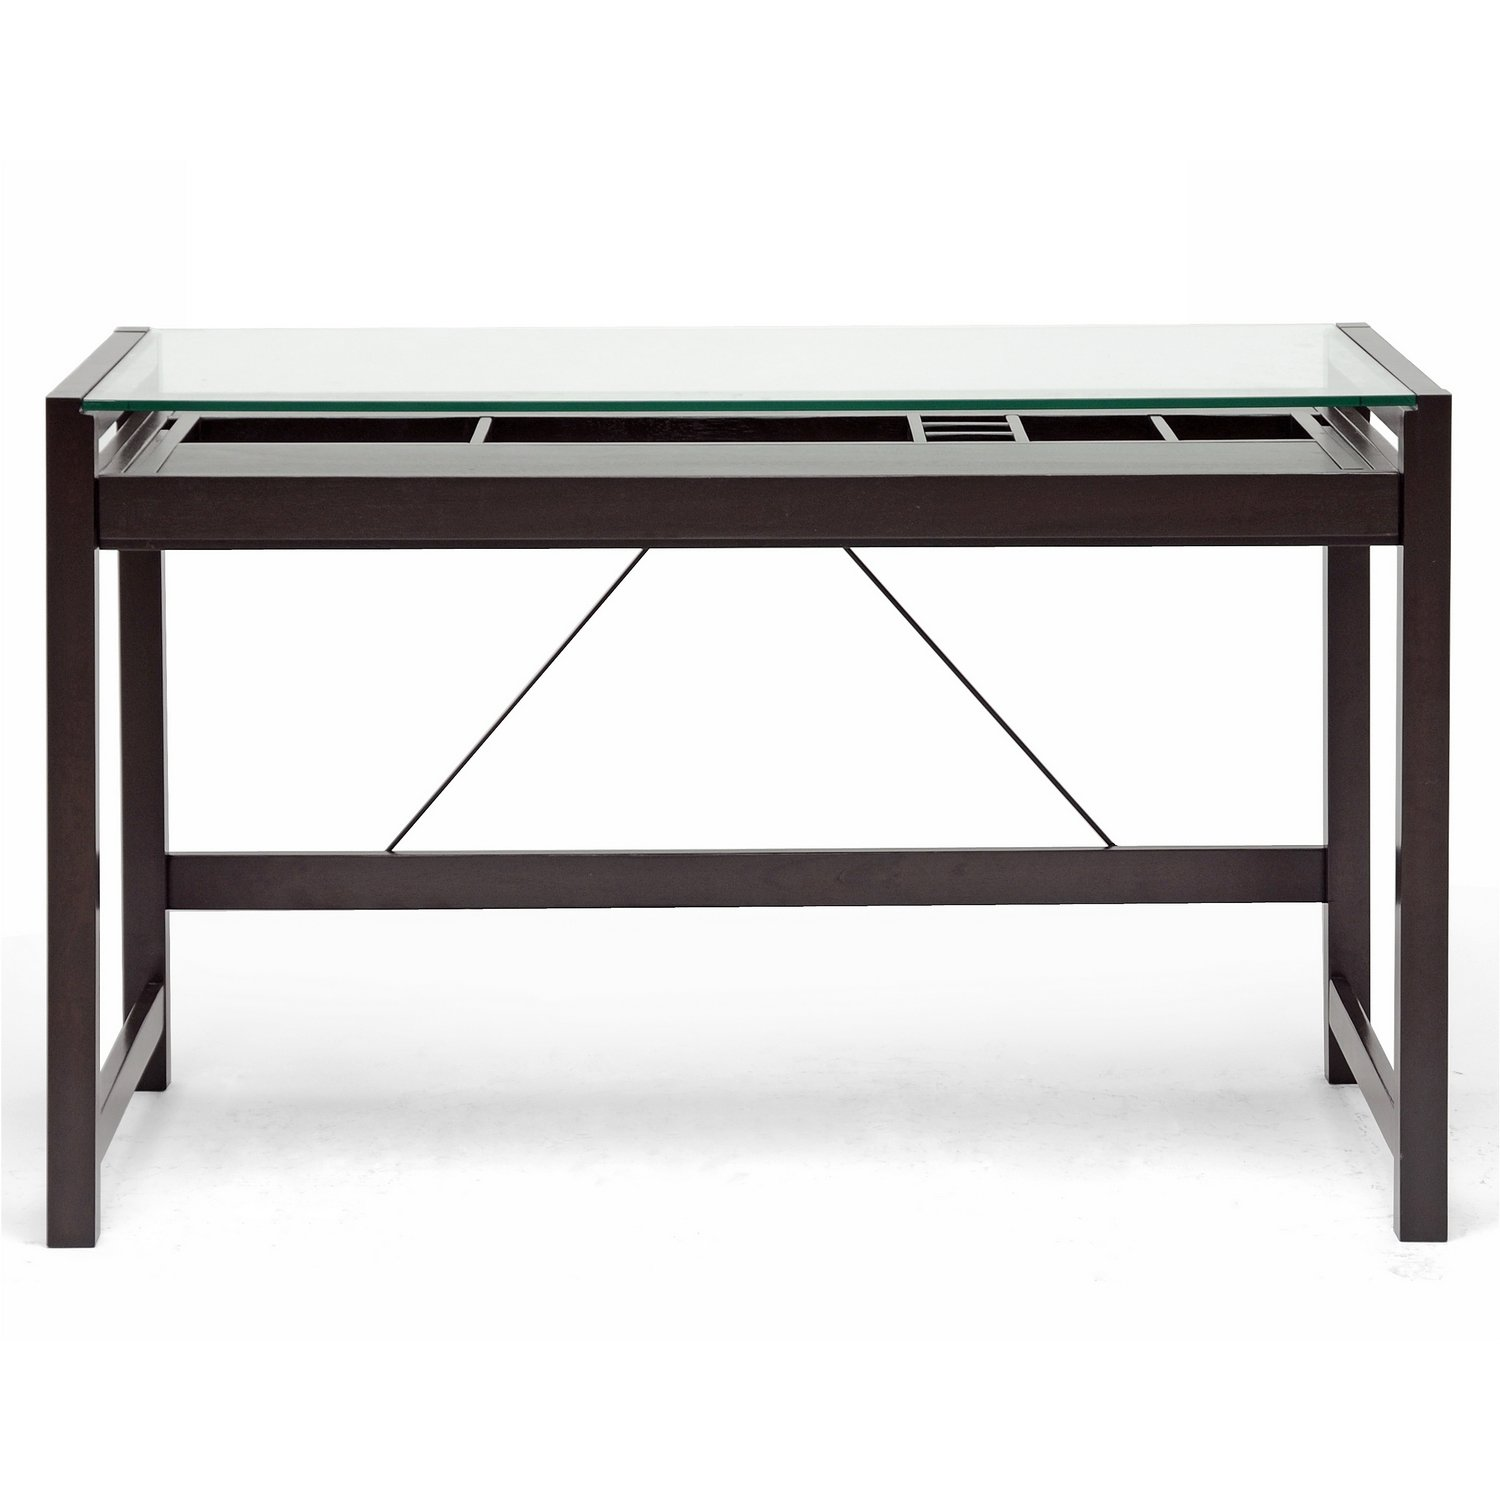 amazoncom baxton studio idabel dark brown wood modern desk with  - amazoncom baxton studio idabel dark brown wood modern desk with glasstop kitchen  dining